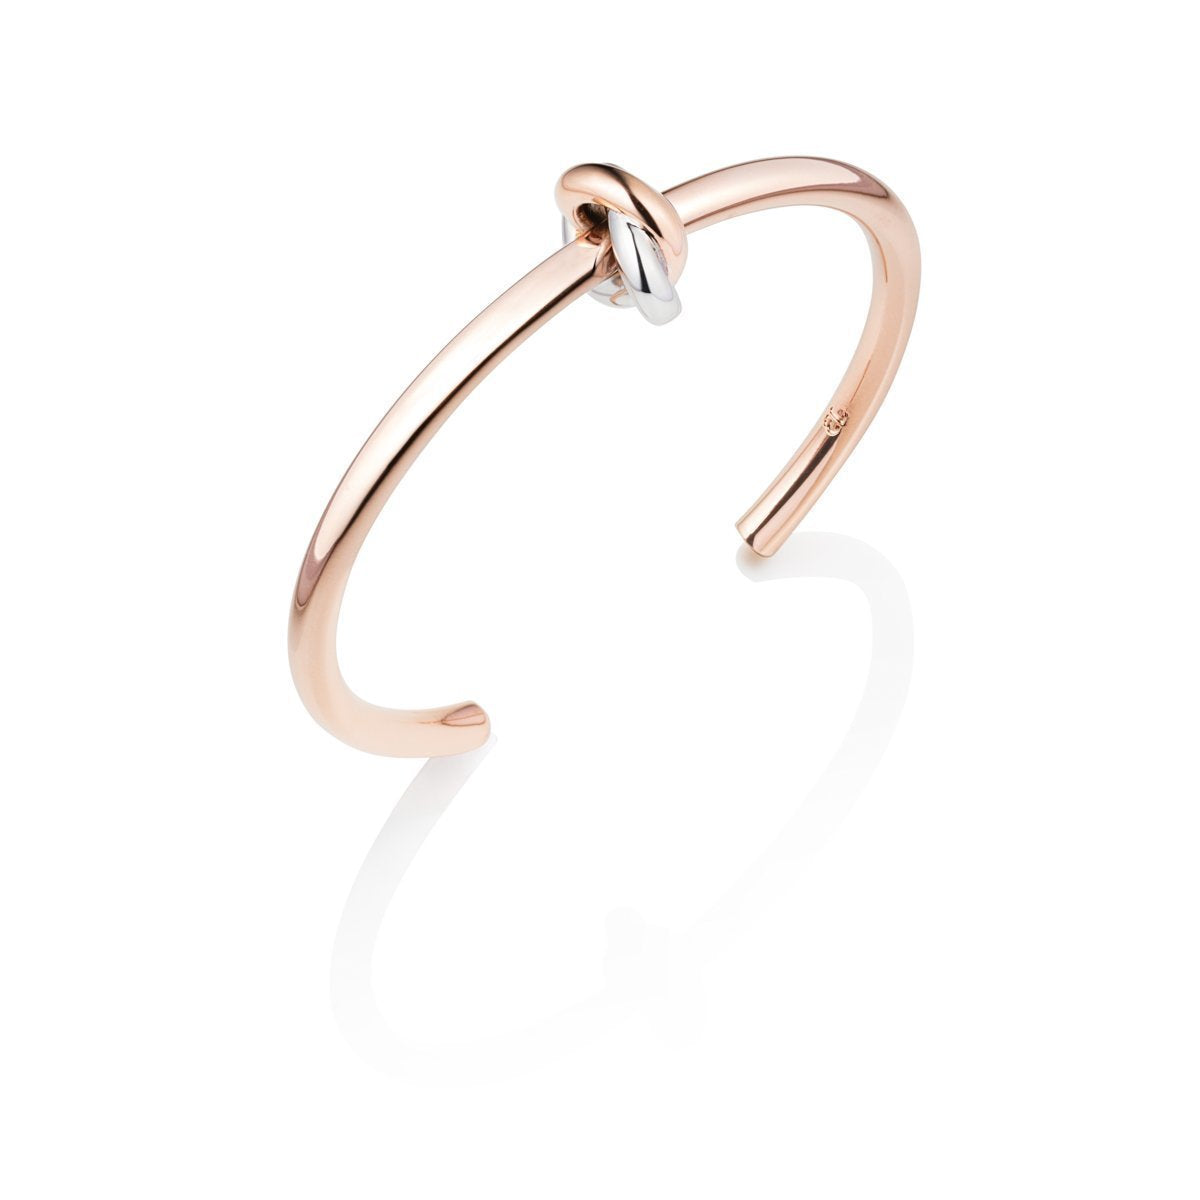 Bangle Knot (Rose Gold/Argent)